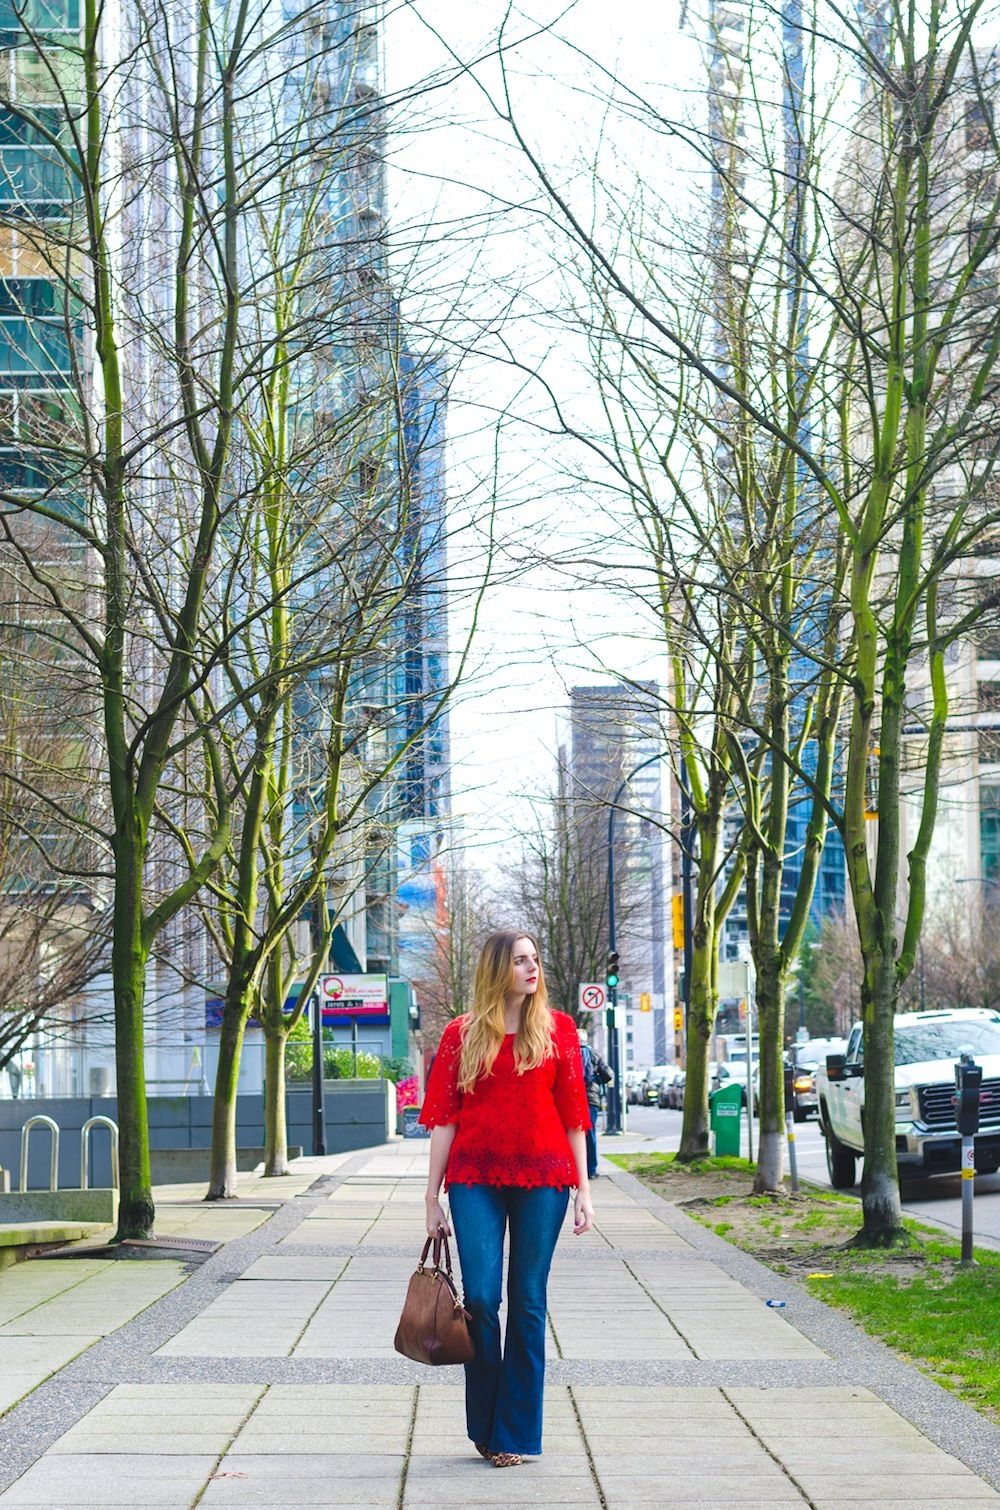 the urban umbrella style blog, vancouver style blog, vancouver bloggers , best vancouver fashion blog, fashion blog, vancouver style blogger, vancouver style bloggers, vancouver fashion blog, vancouver lifestyle blog, vancouver health blog, vancouver fitness blog, vancouver travel blog, canadian fashion blog, canadian style blog, canadian travel blog, west coast style, bree aylwin, spring style, spring fashion trends, spring outfit ideas, spring fashion, fashion styles, vancouver fashion blogger, top fashion blogs, popular fashion blogs, top style blogs , fashionista